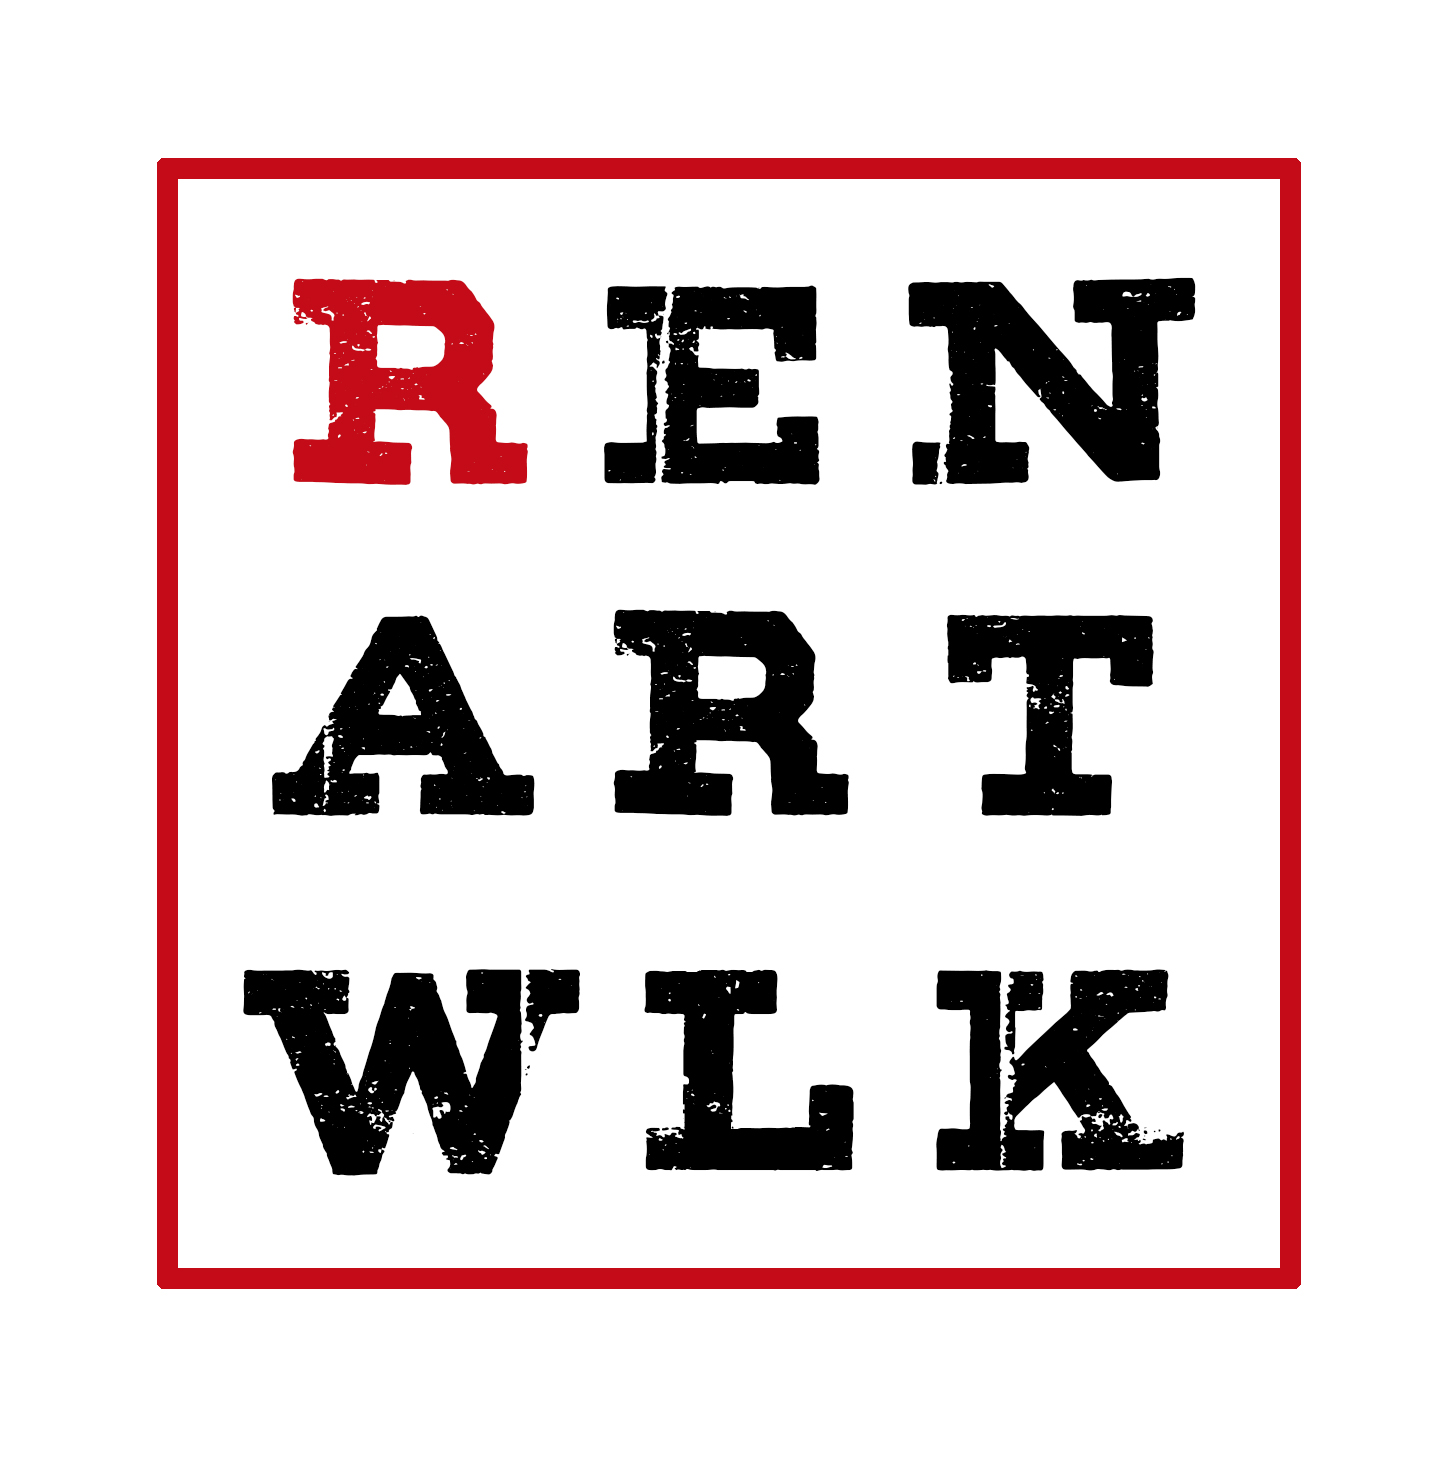 Rensselaer art walk logo.jpg